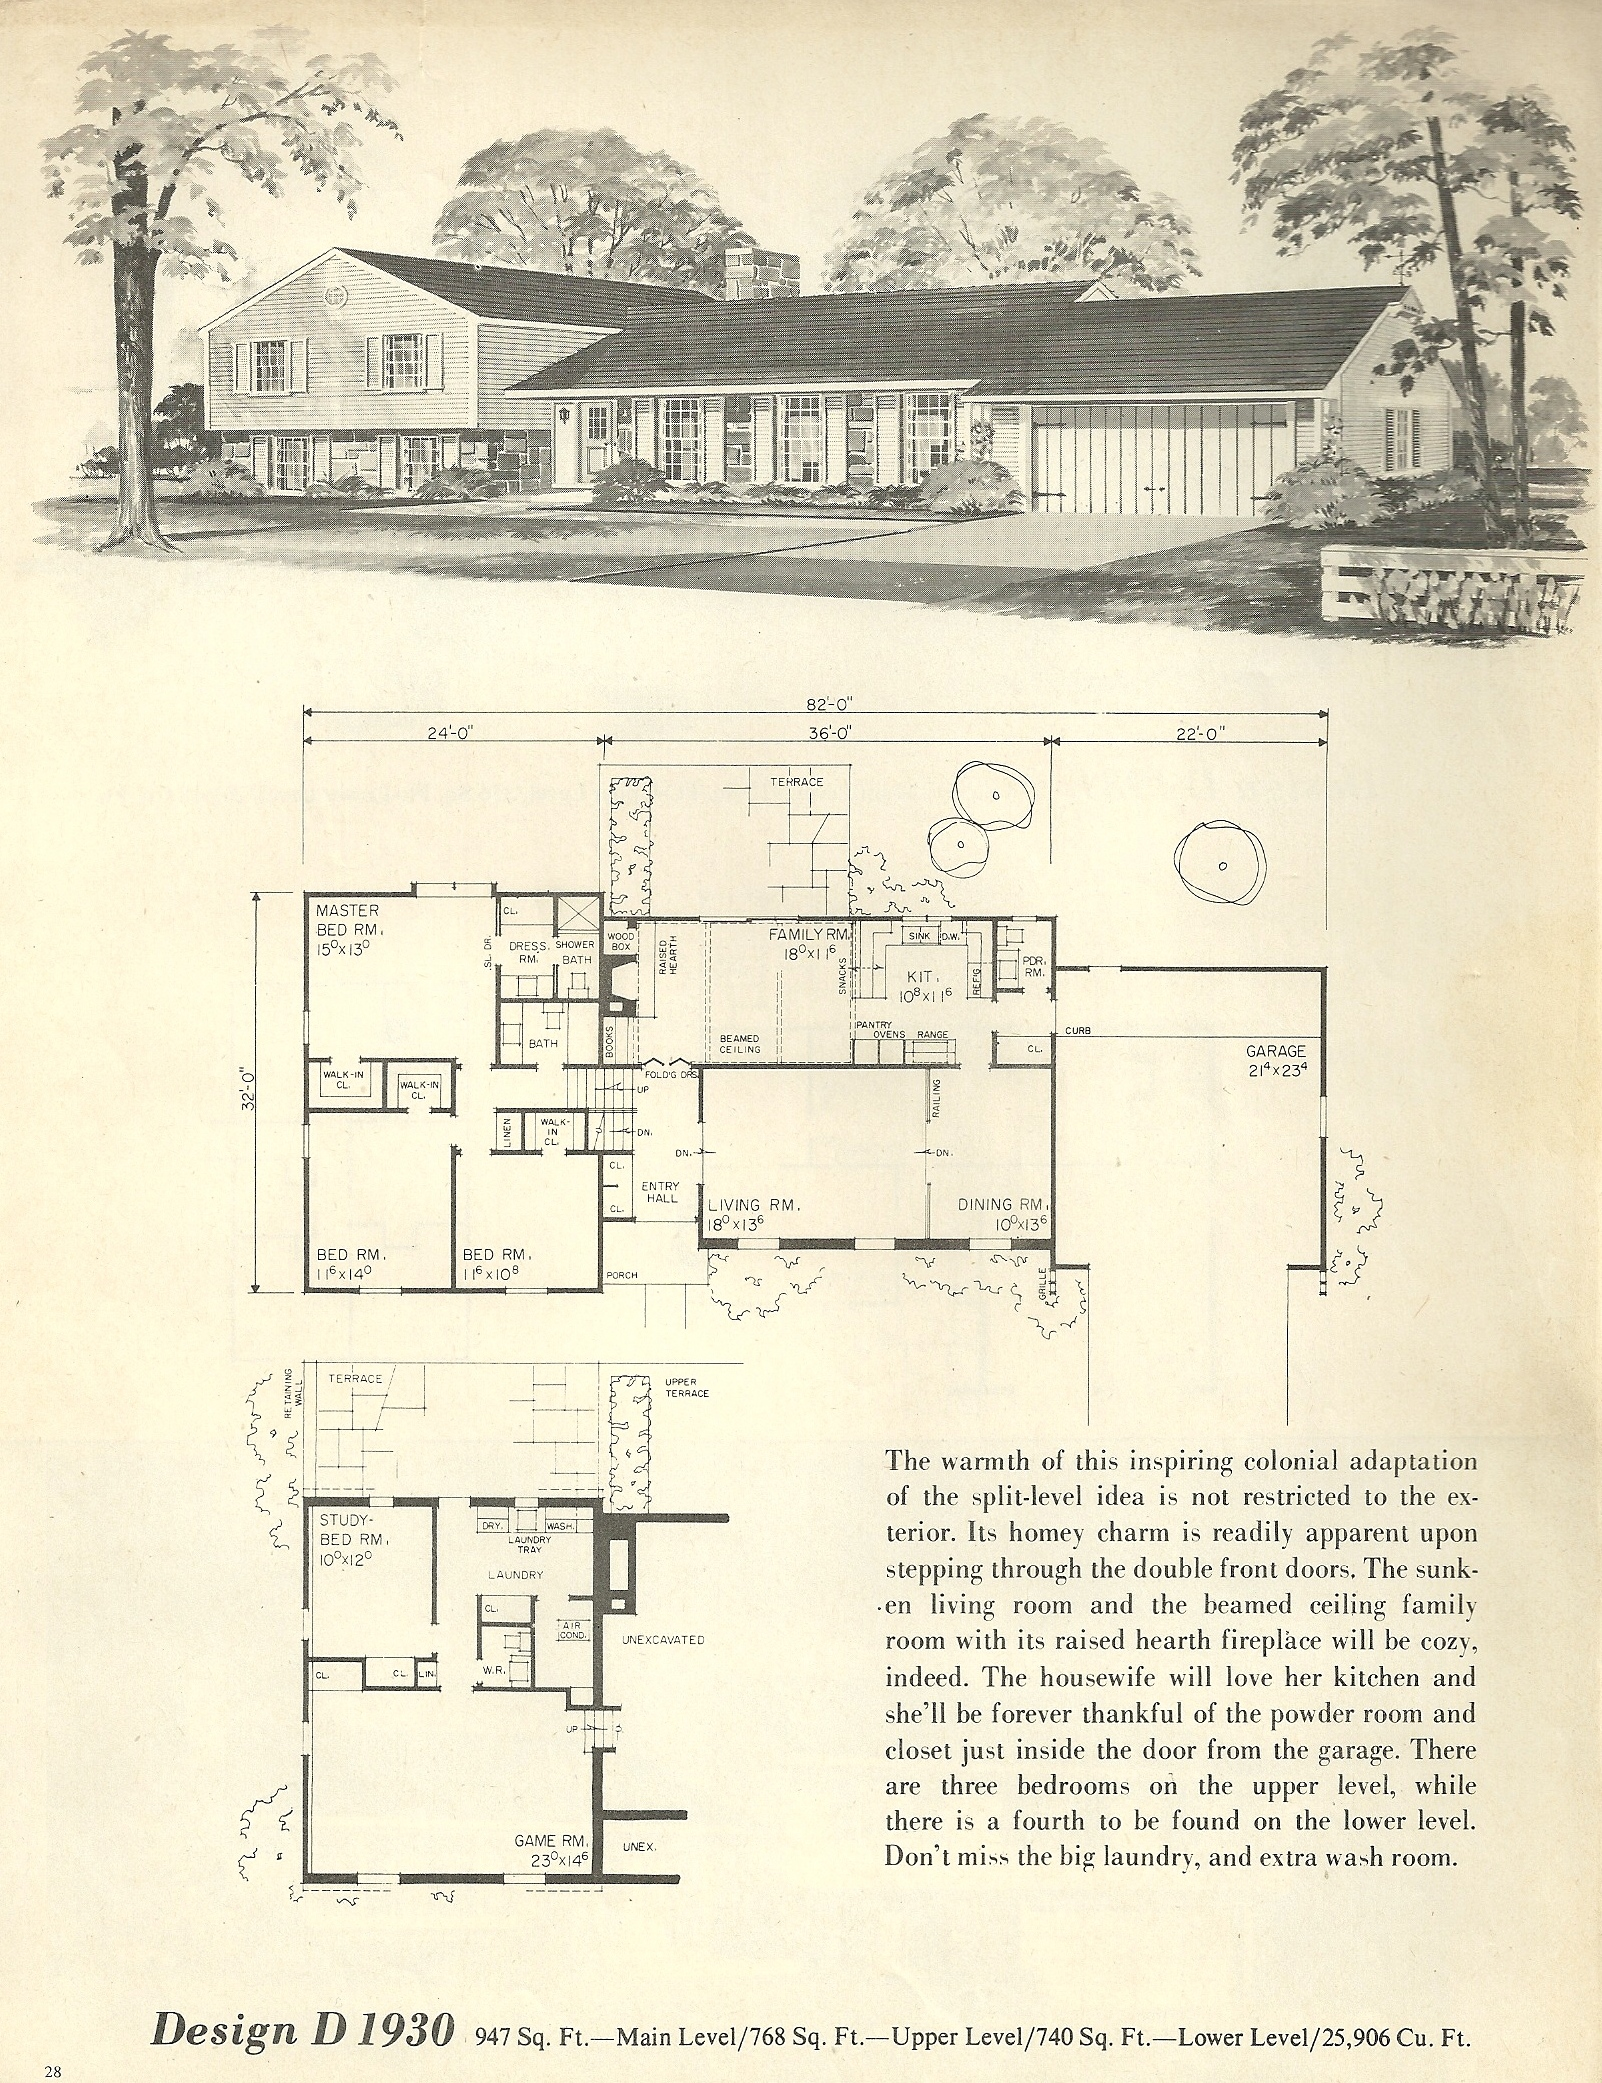 Vintage house plans 1930 antique alter ego for Single story mid century modern house plans